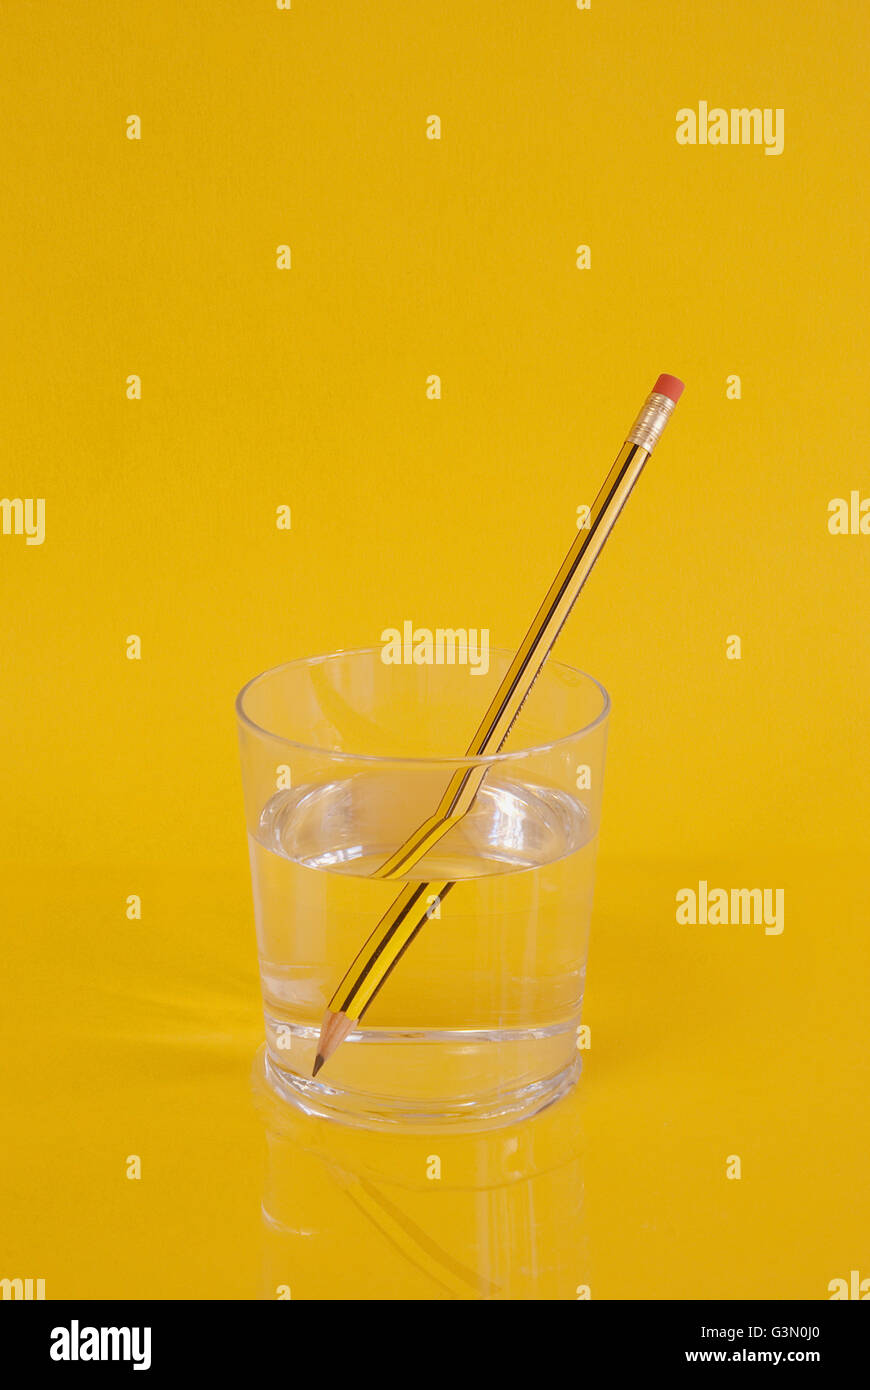 Pencil in a glass of water. - Stock Image